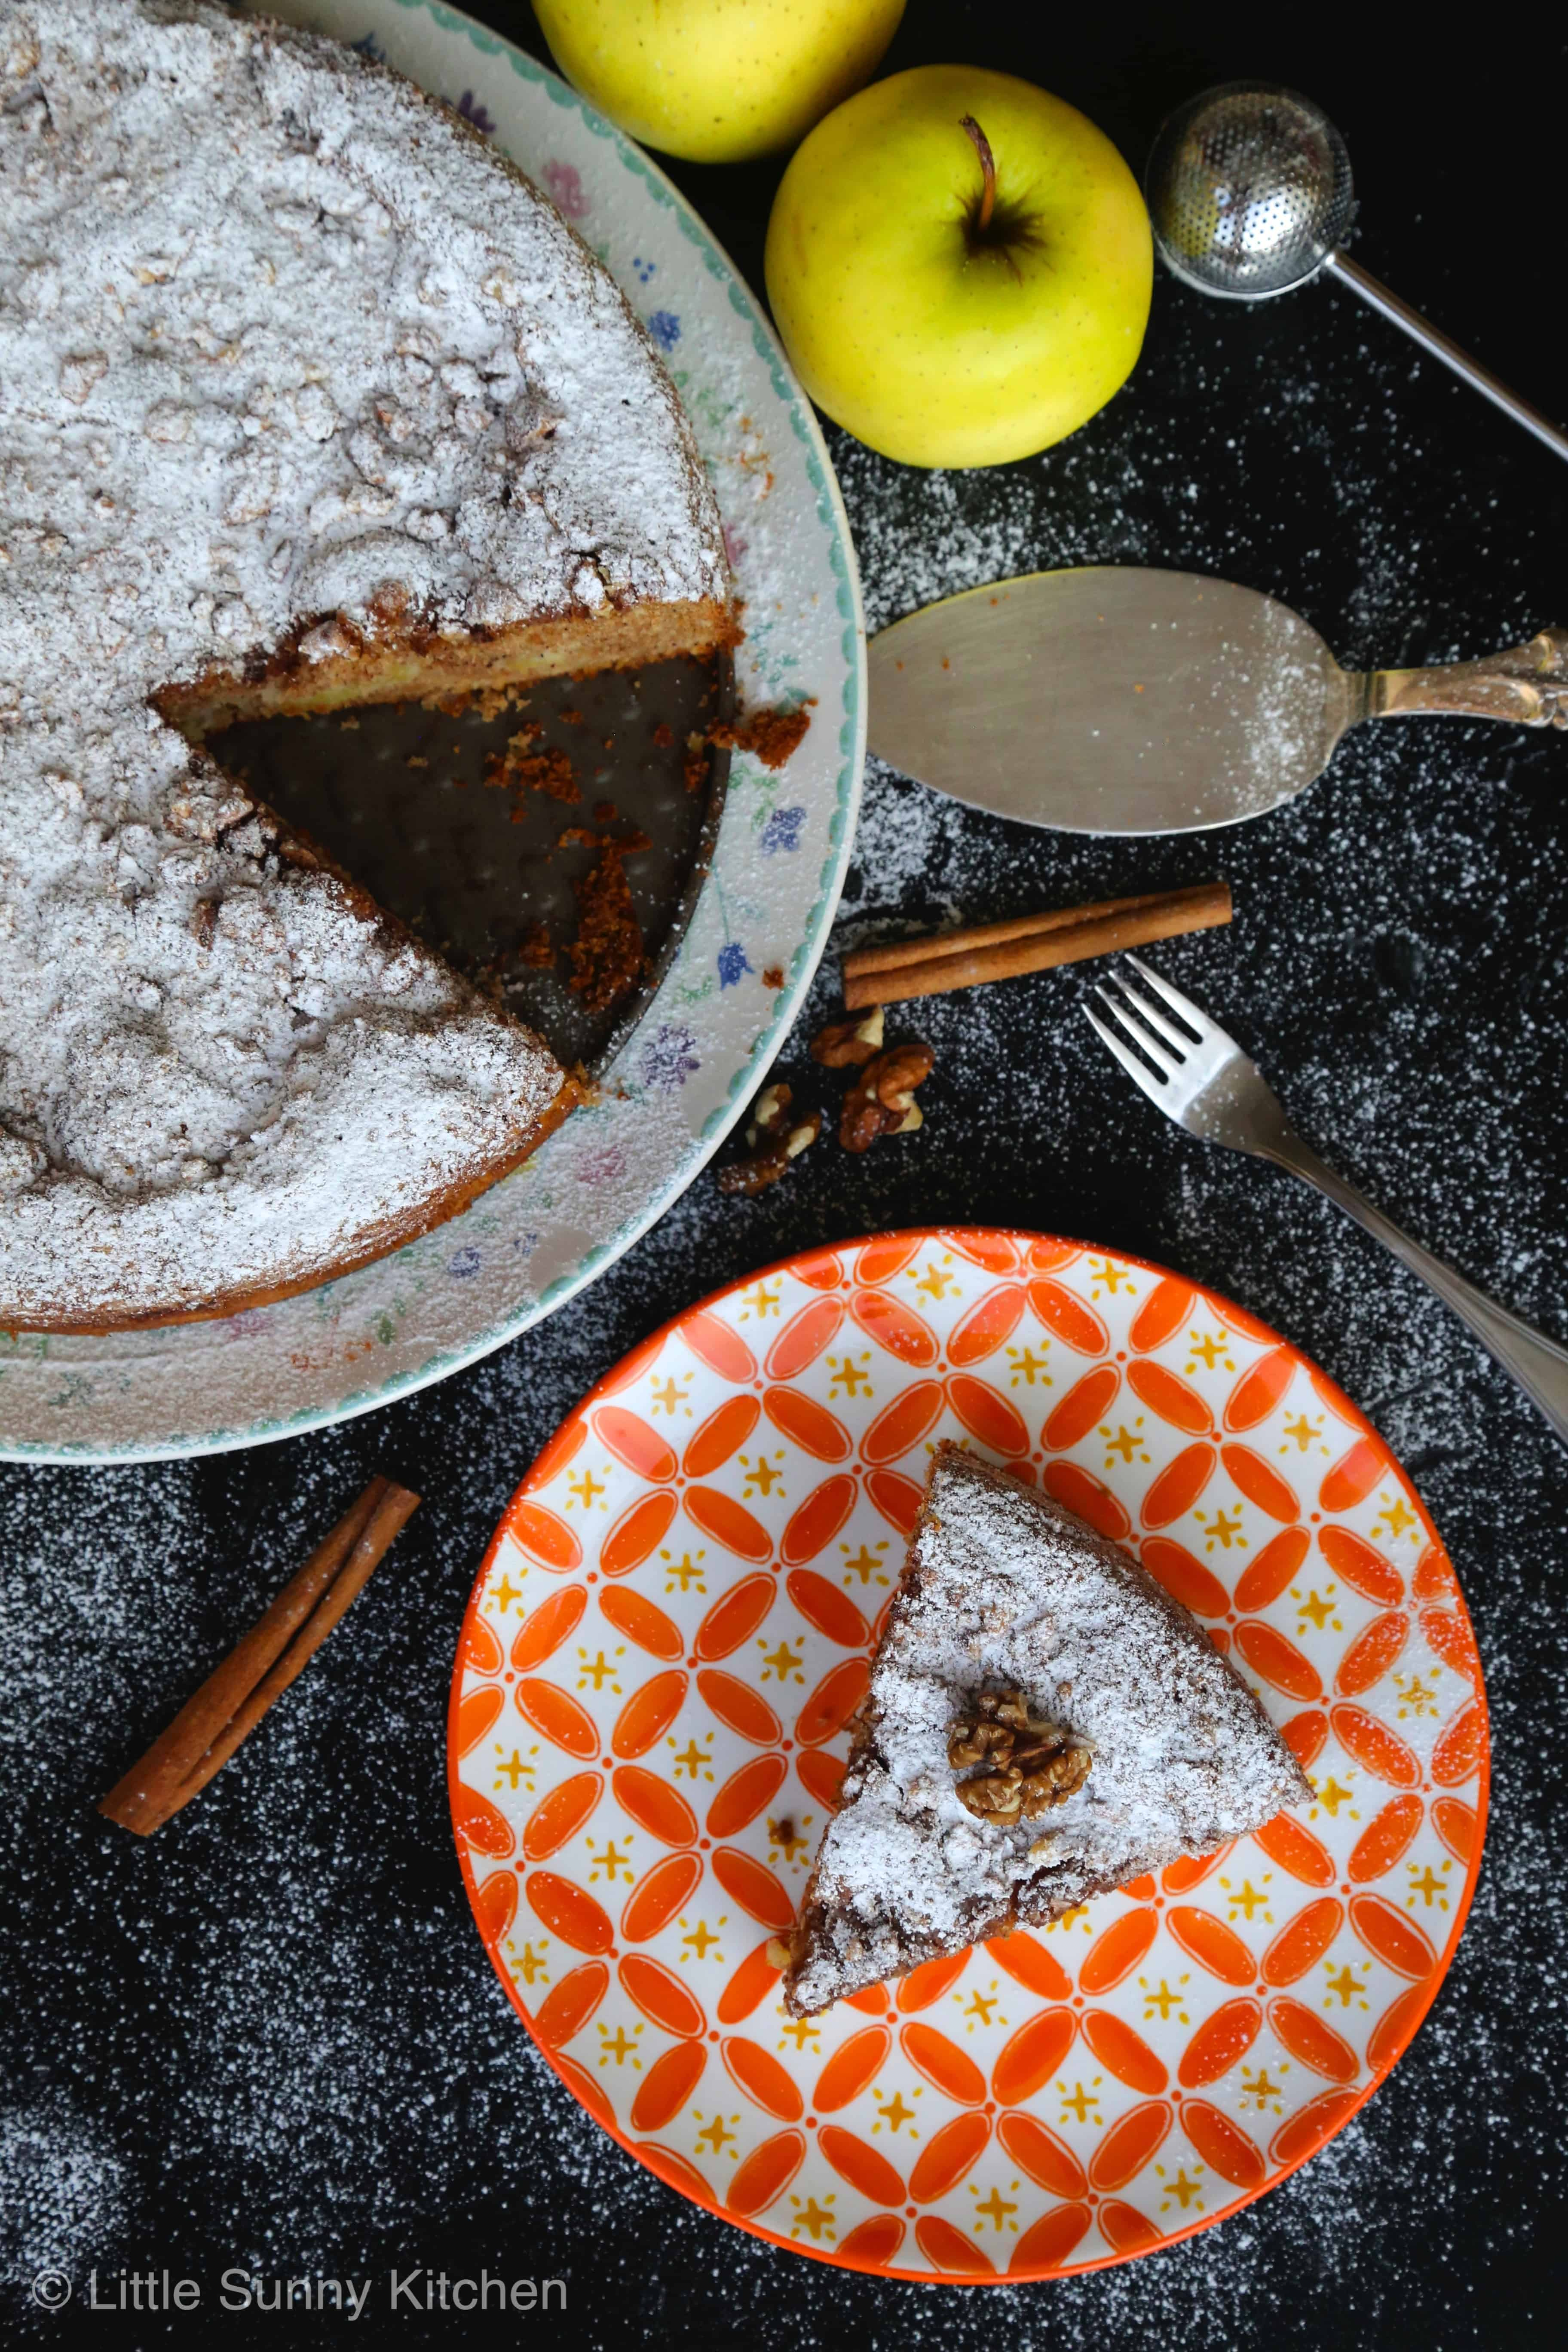 Top view of an apple Sharlotka cake slice served in an orange patterned plate with the cake, cinnamon sticks, and apples on the side.